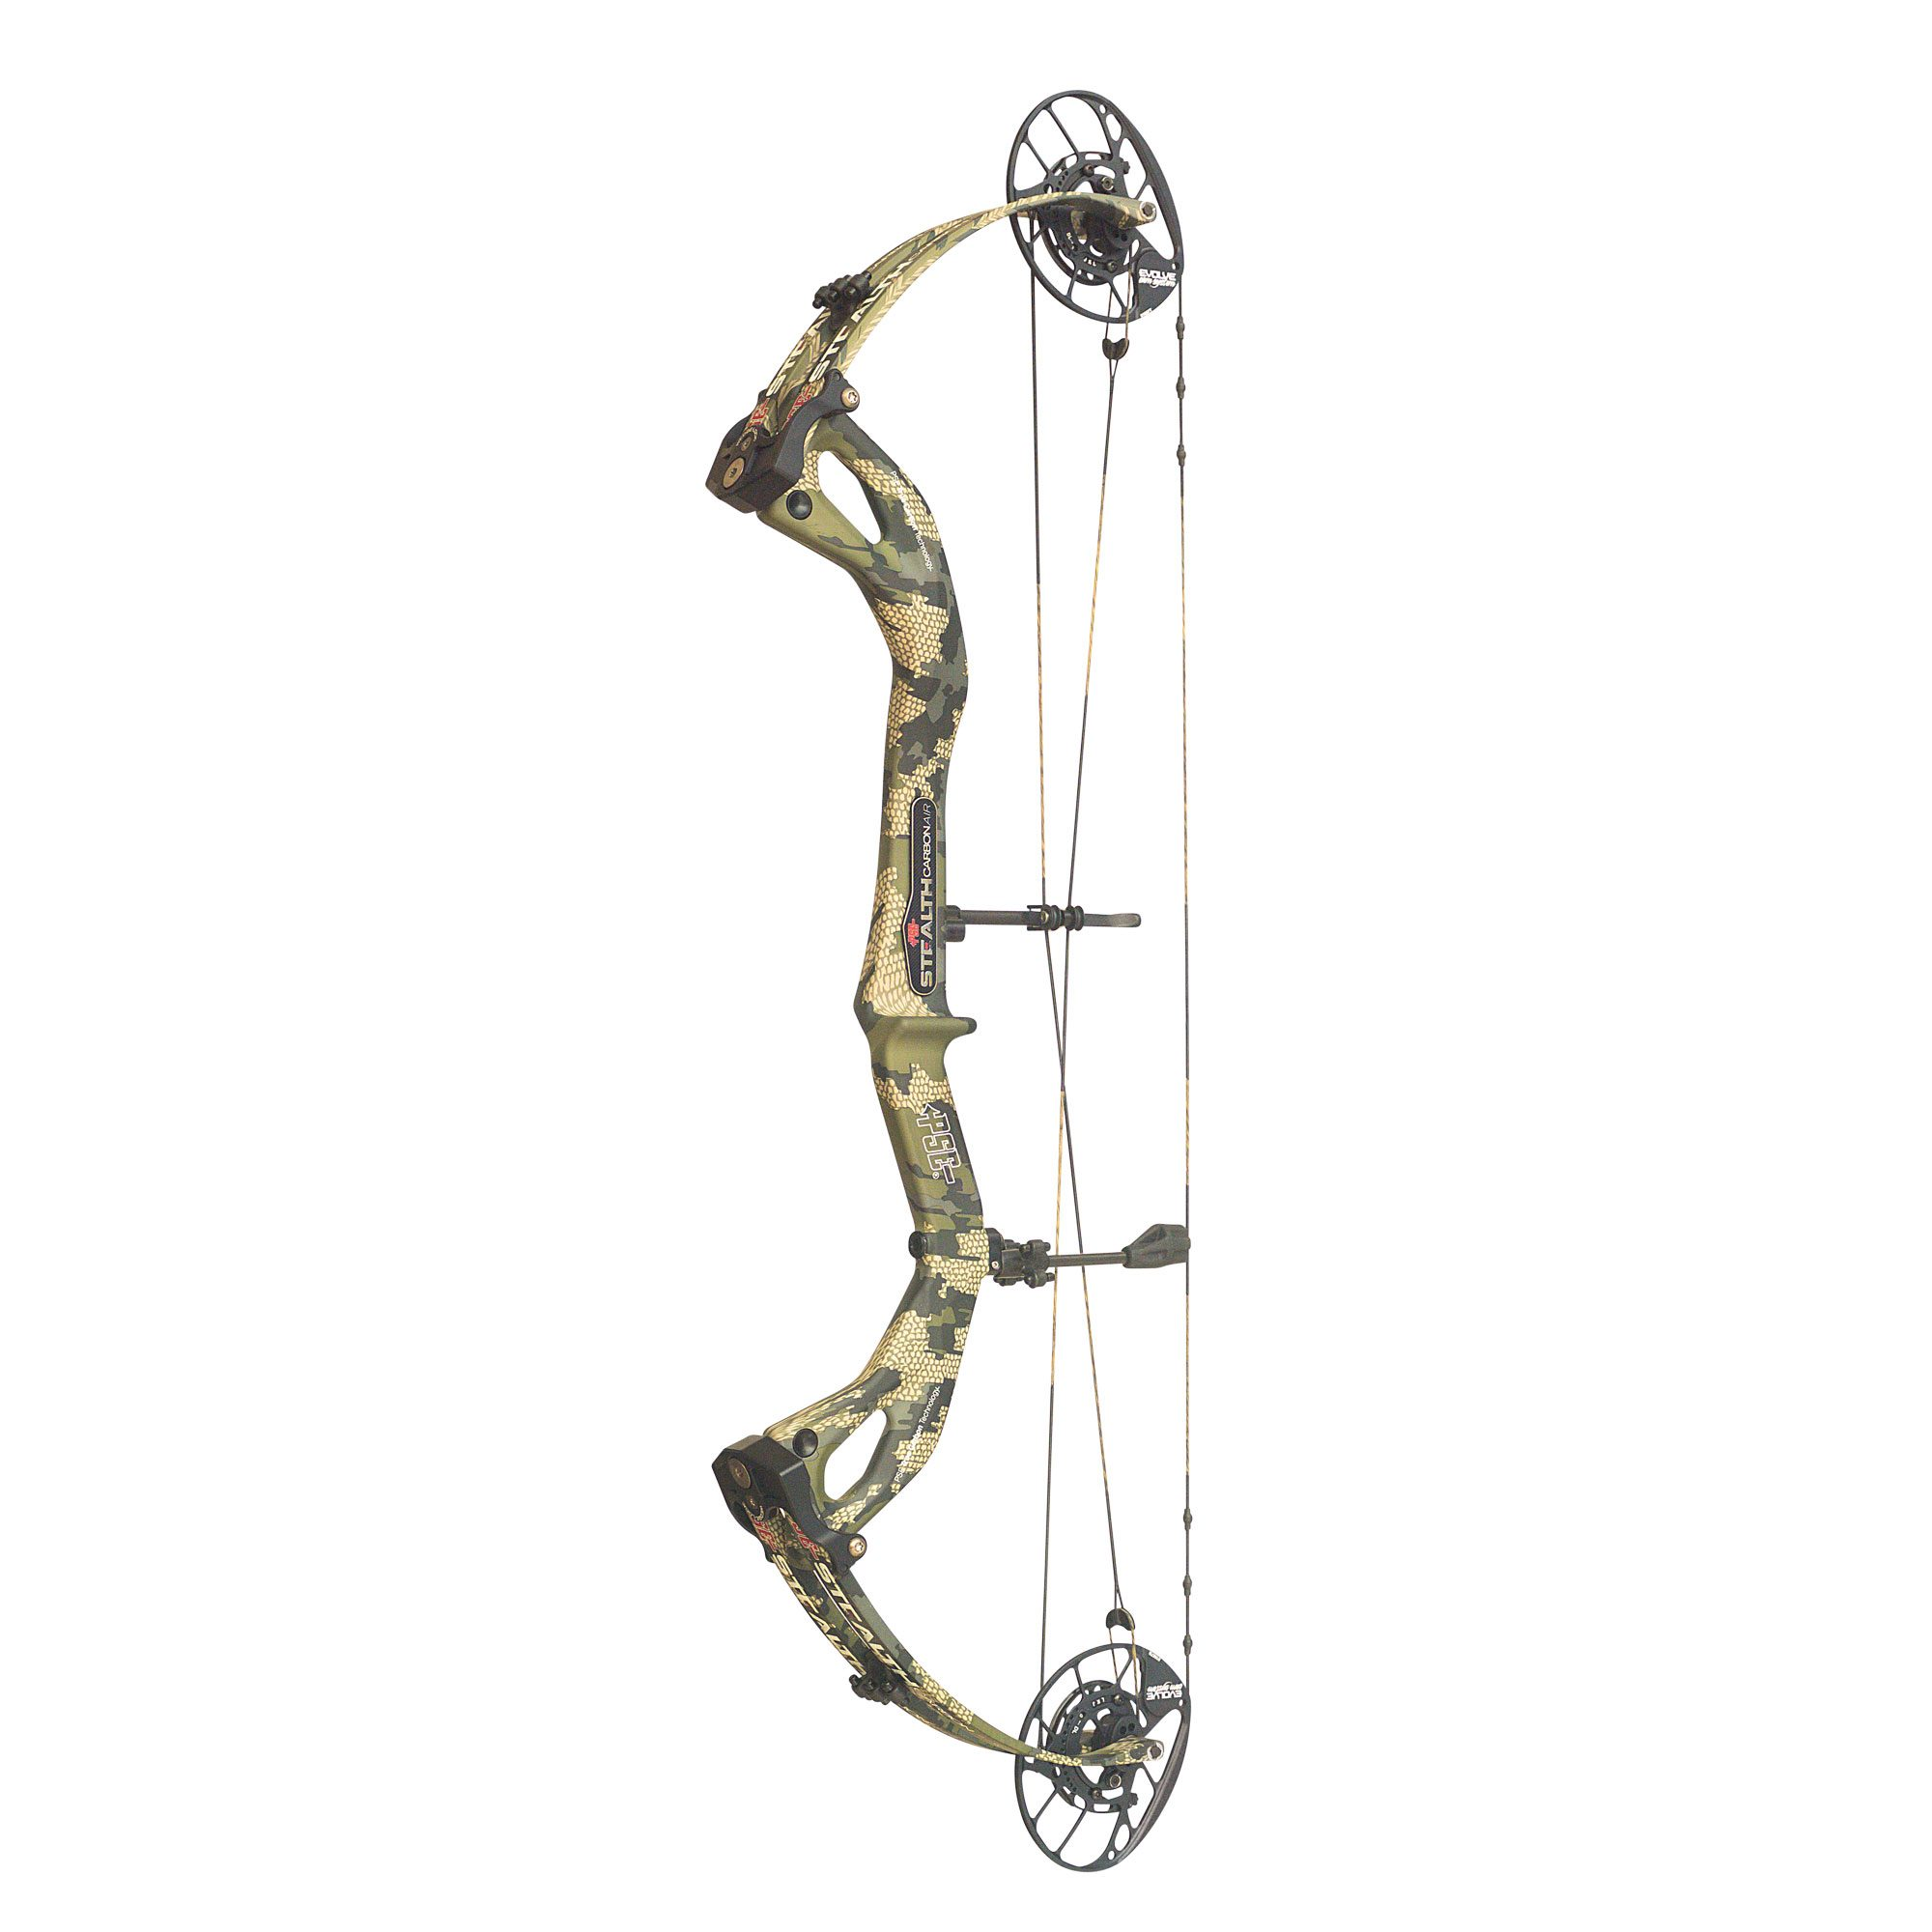 2020 PSE Carbon Air Stealth 35 EC in Kuiu Verde